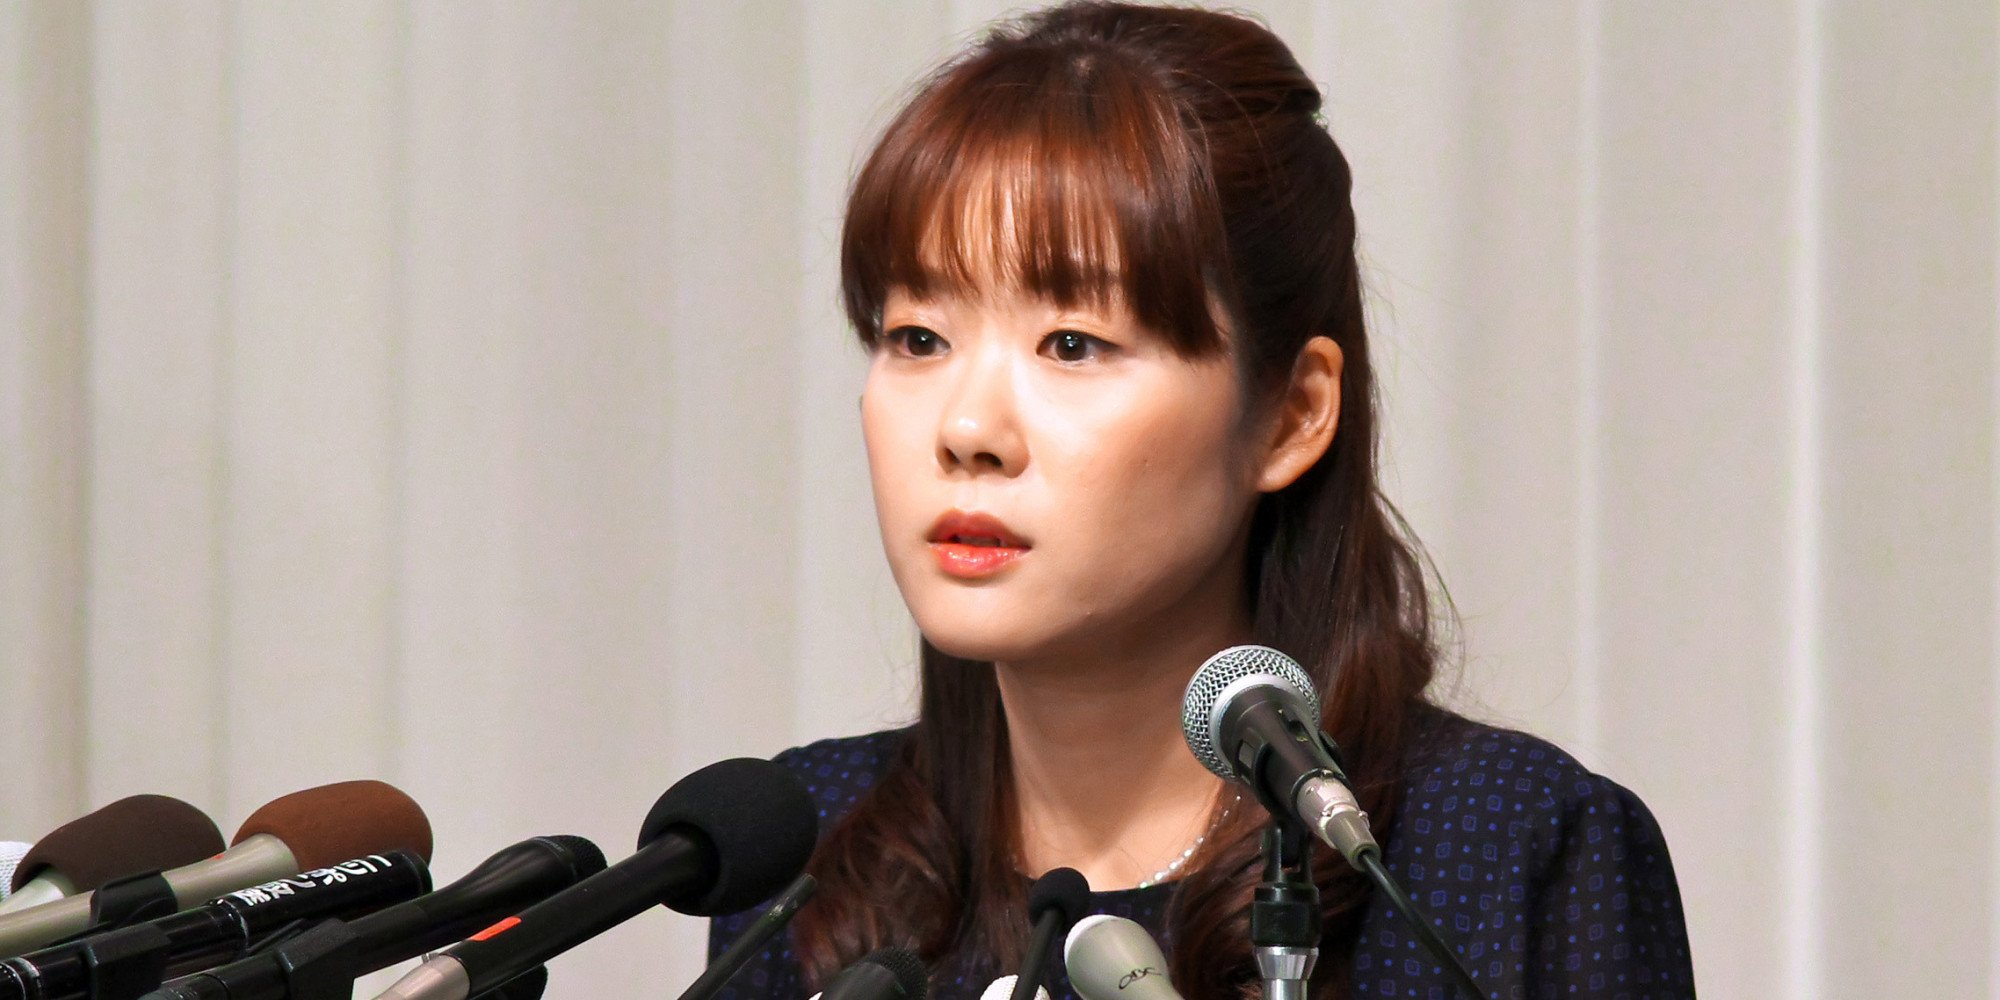 Haruko Obokata, a researcher at Riken research institution, attends a news conference in Osaka, Japan, on Wednesday, April 9, 2014. Japans Riken research center said on April 1 some data were falsified in a pair of studies that had outlined a simpler, quicker way of making stem cells. Obokata, who had led the studies, told reporters today she was able to replicate STAP stem cells more than 200 times. Photographer: Tetsuya Yamada/Bloomberg via Getty Images